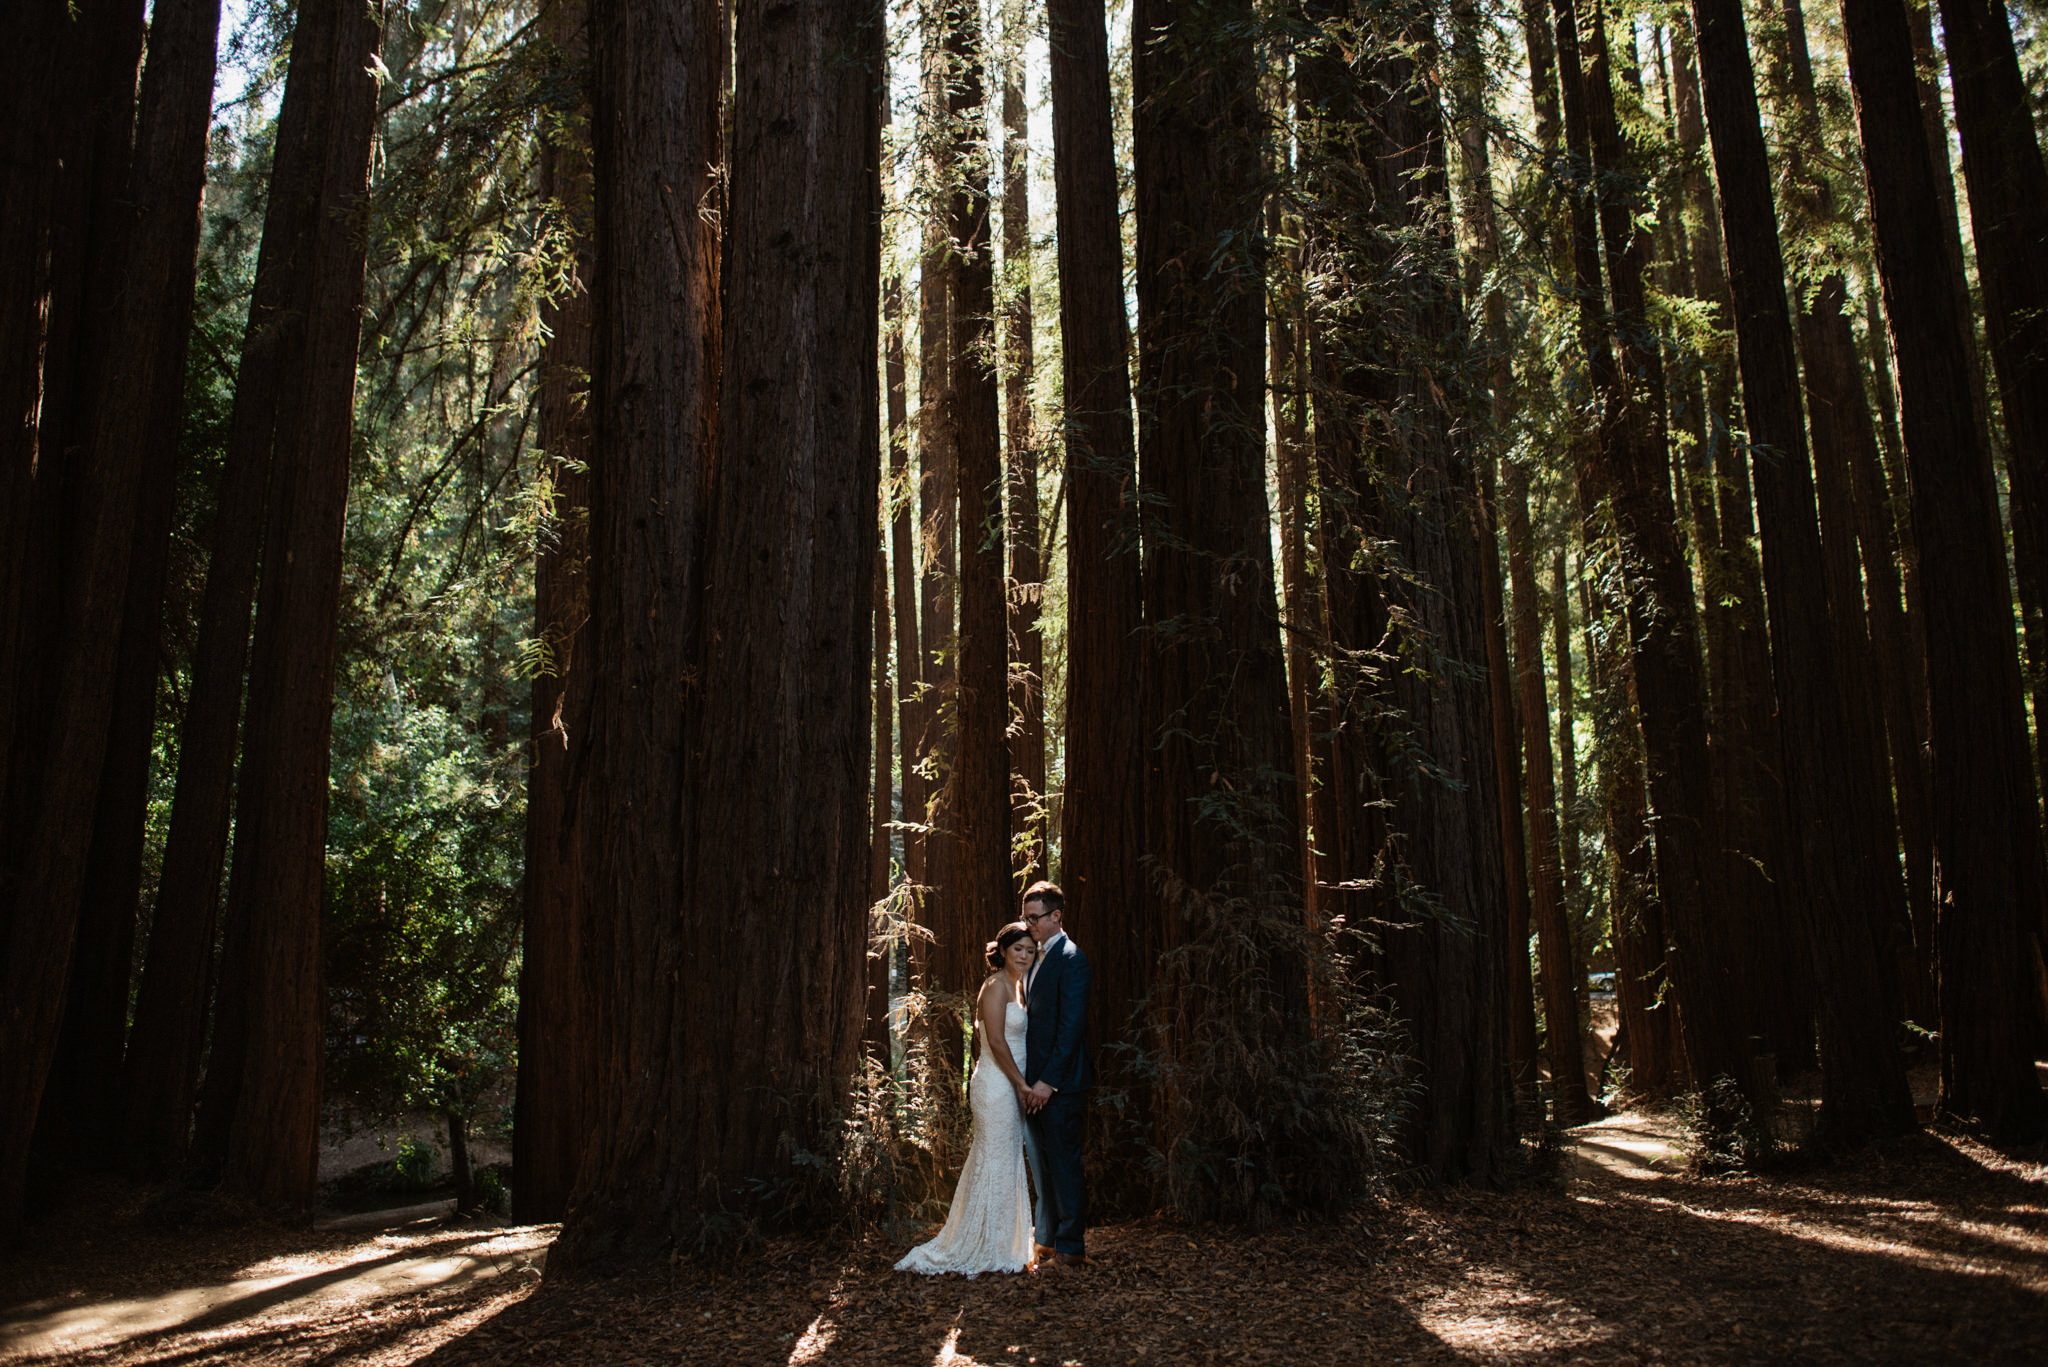 Daring Wanderer Photography - Daring Wanderer - Destination Wedding Photographer - Mill valley wedding photographer - Old Mill Park Wedding - Redwoods wedding - forest wedding ceremony - california wedding photographer - the outdoor arts club wedding - mill valley wedding